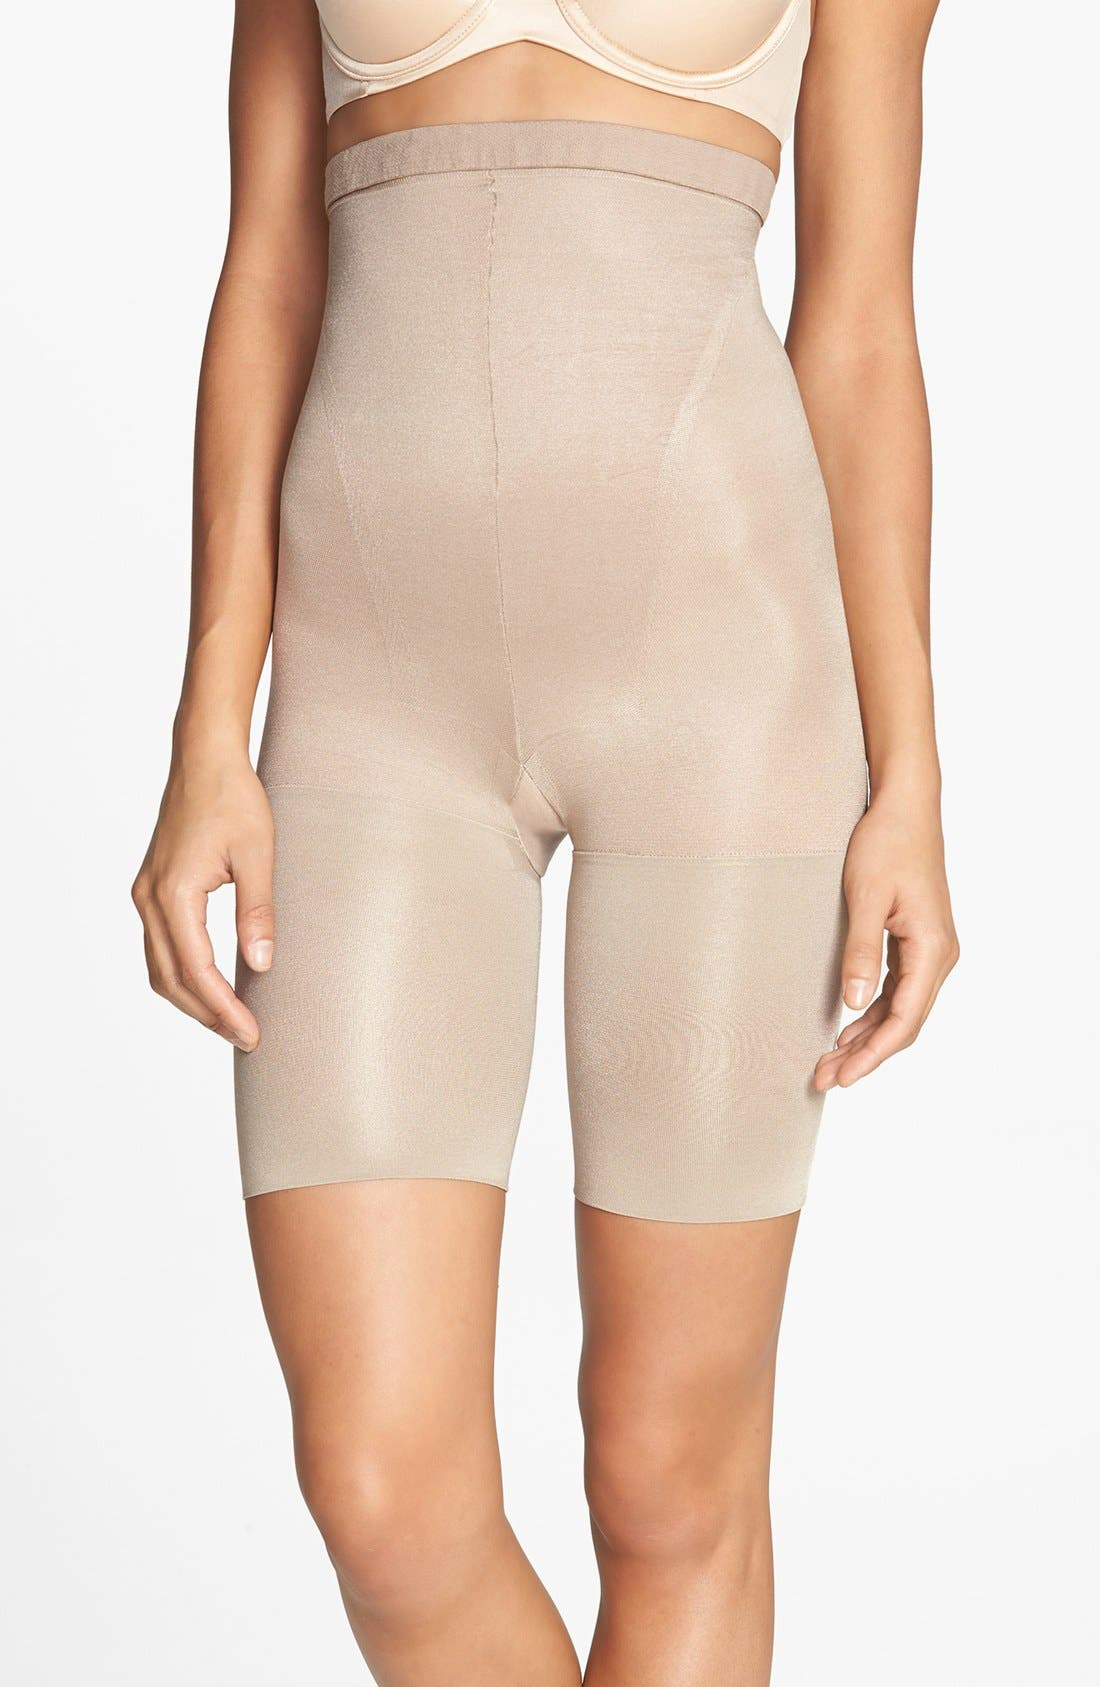 Image of SPANX In-Power Line Super Higher Power Tummy Control Shaper